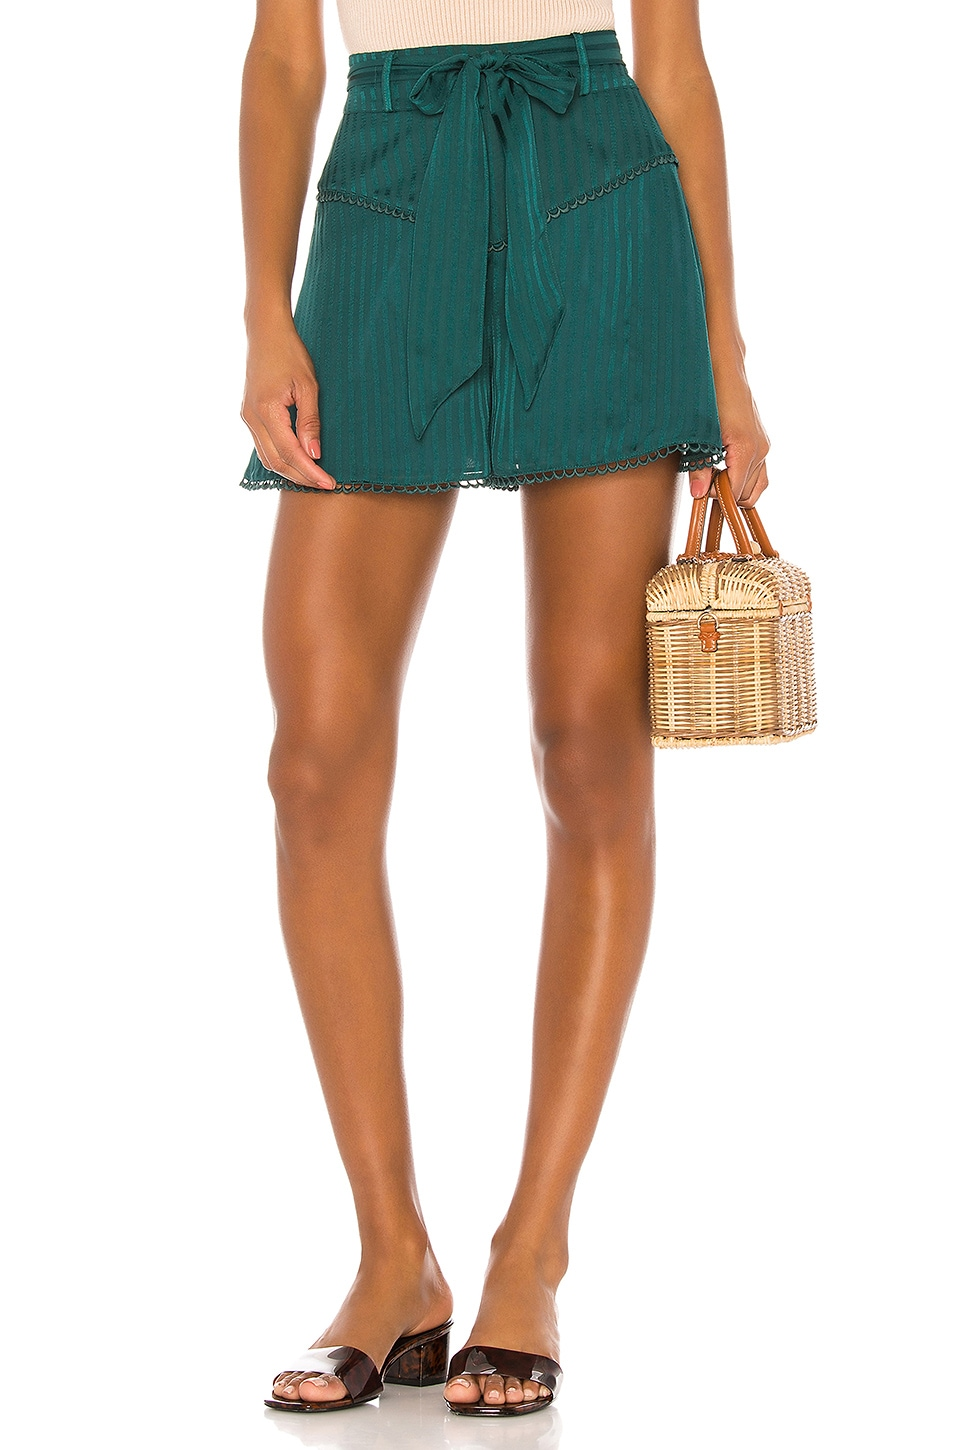 Privacy Please Sabrina Short in Moss Green